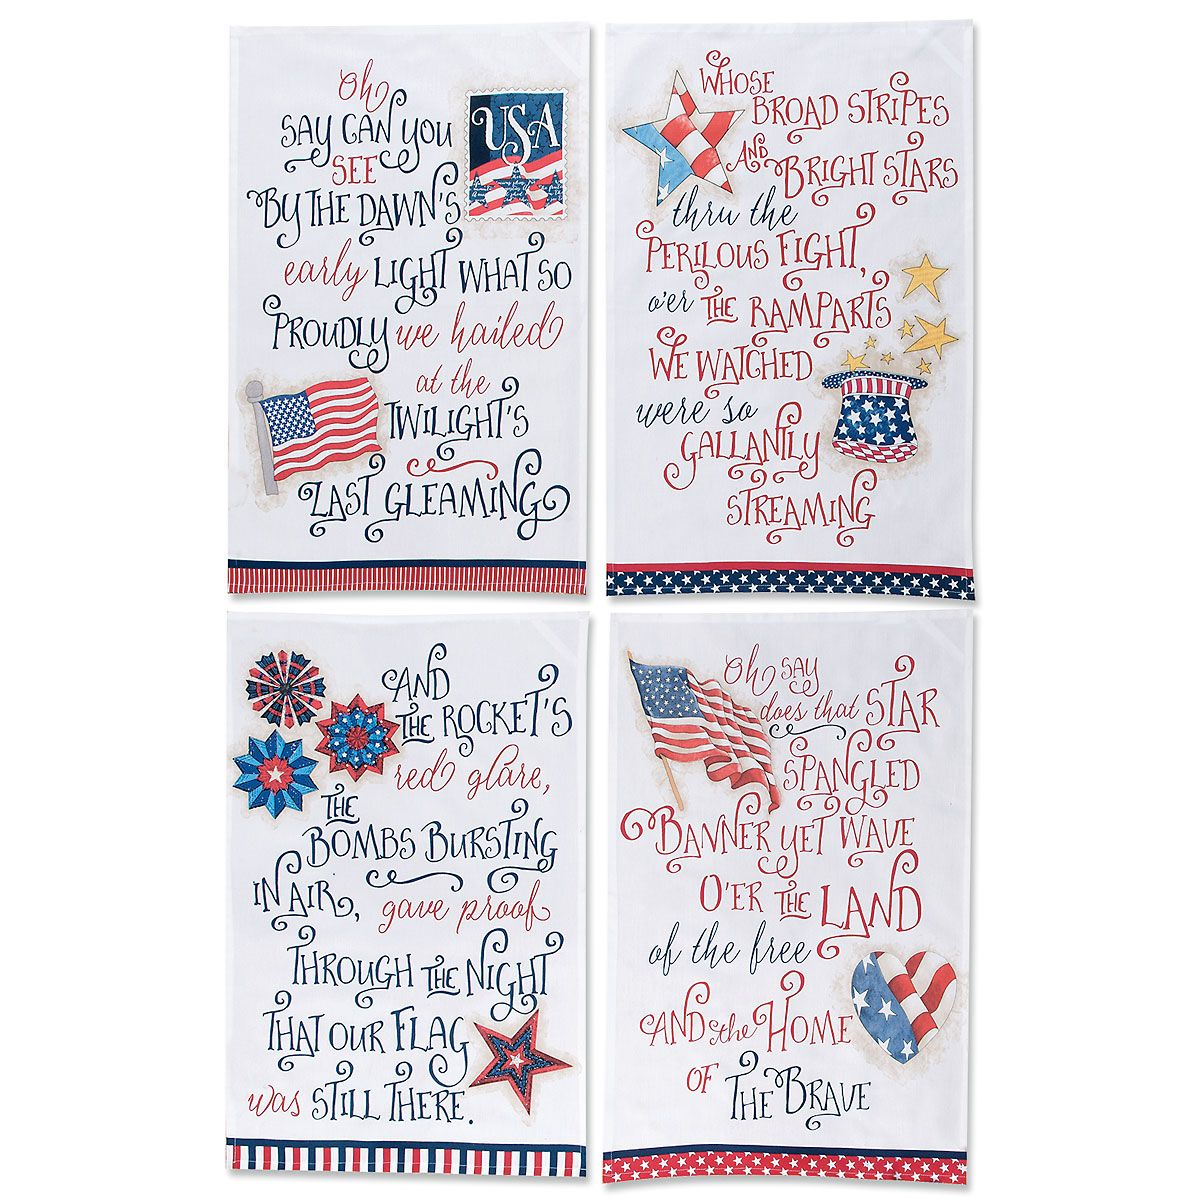 Star-Spangled Banner Dish Towels